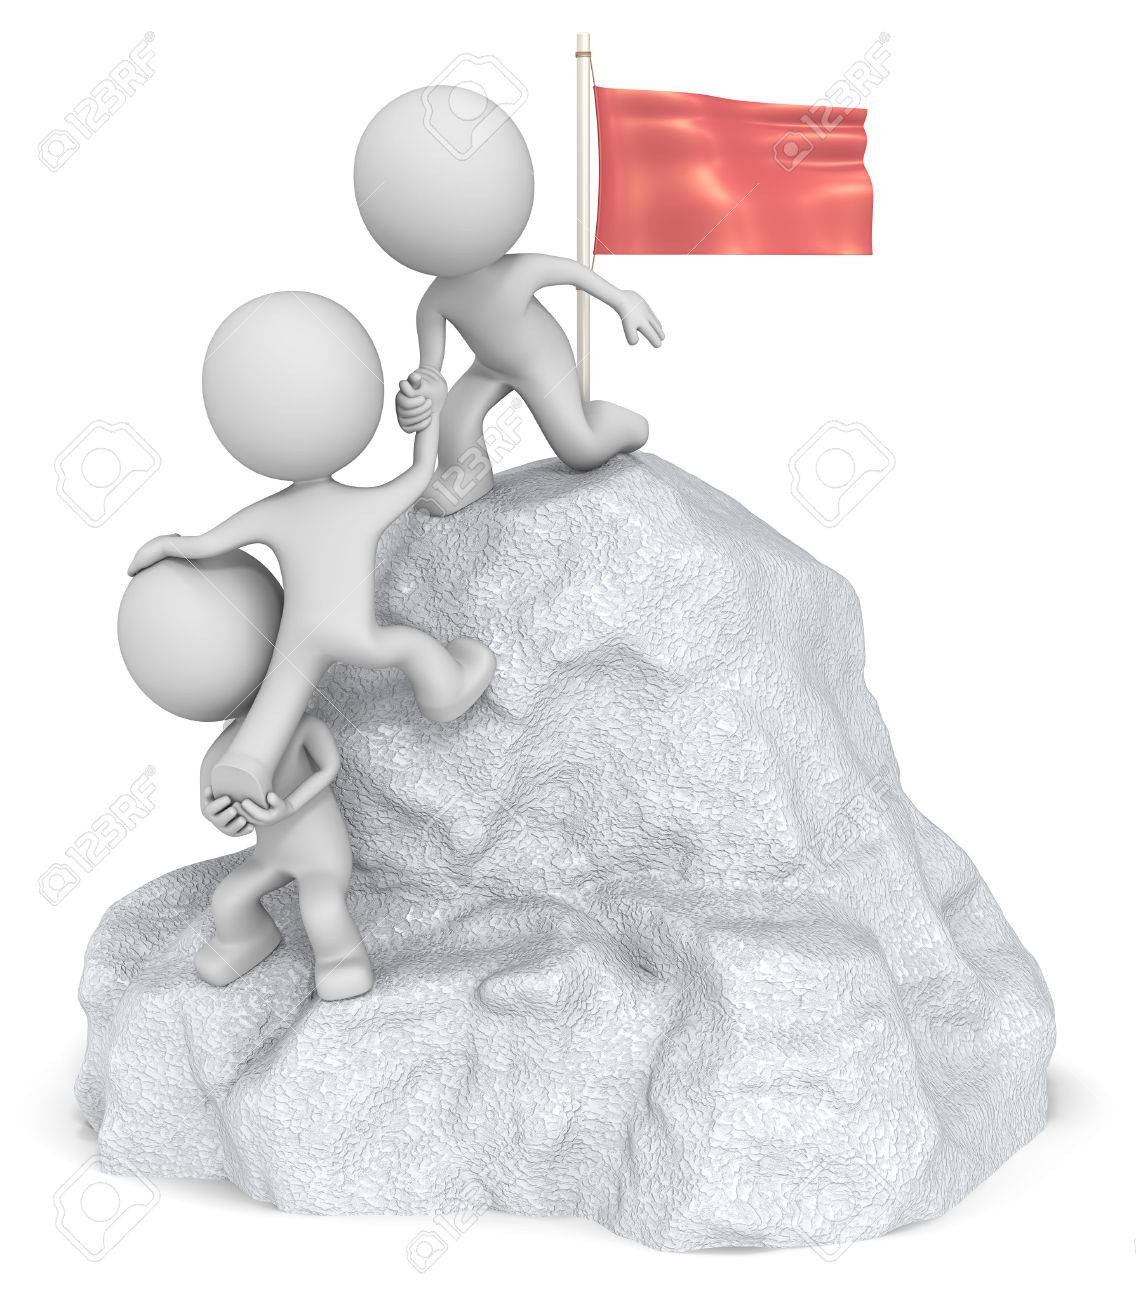 Conquer. The dude 3D character x3 climbing a Mountain with top Flag. Standard-Bild - 35878088